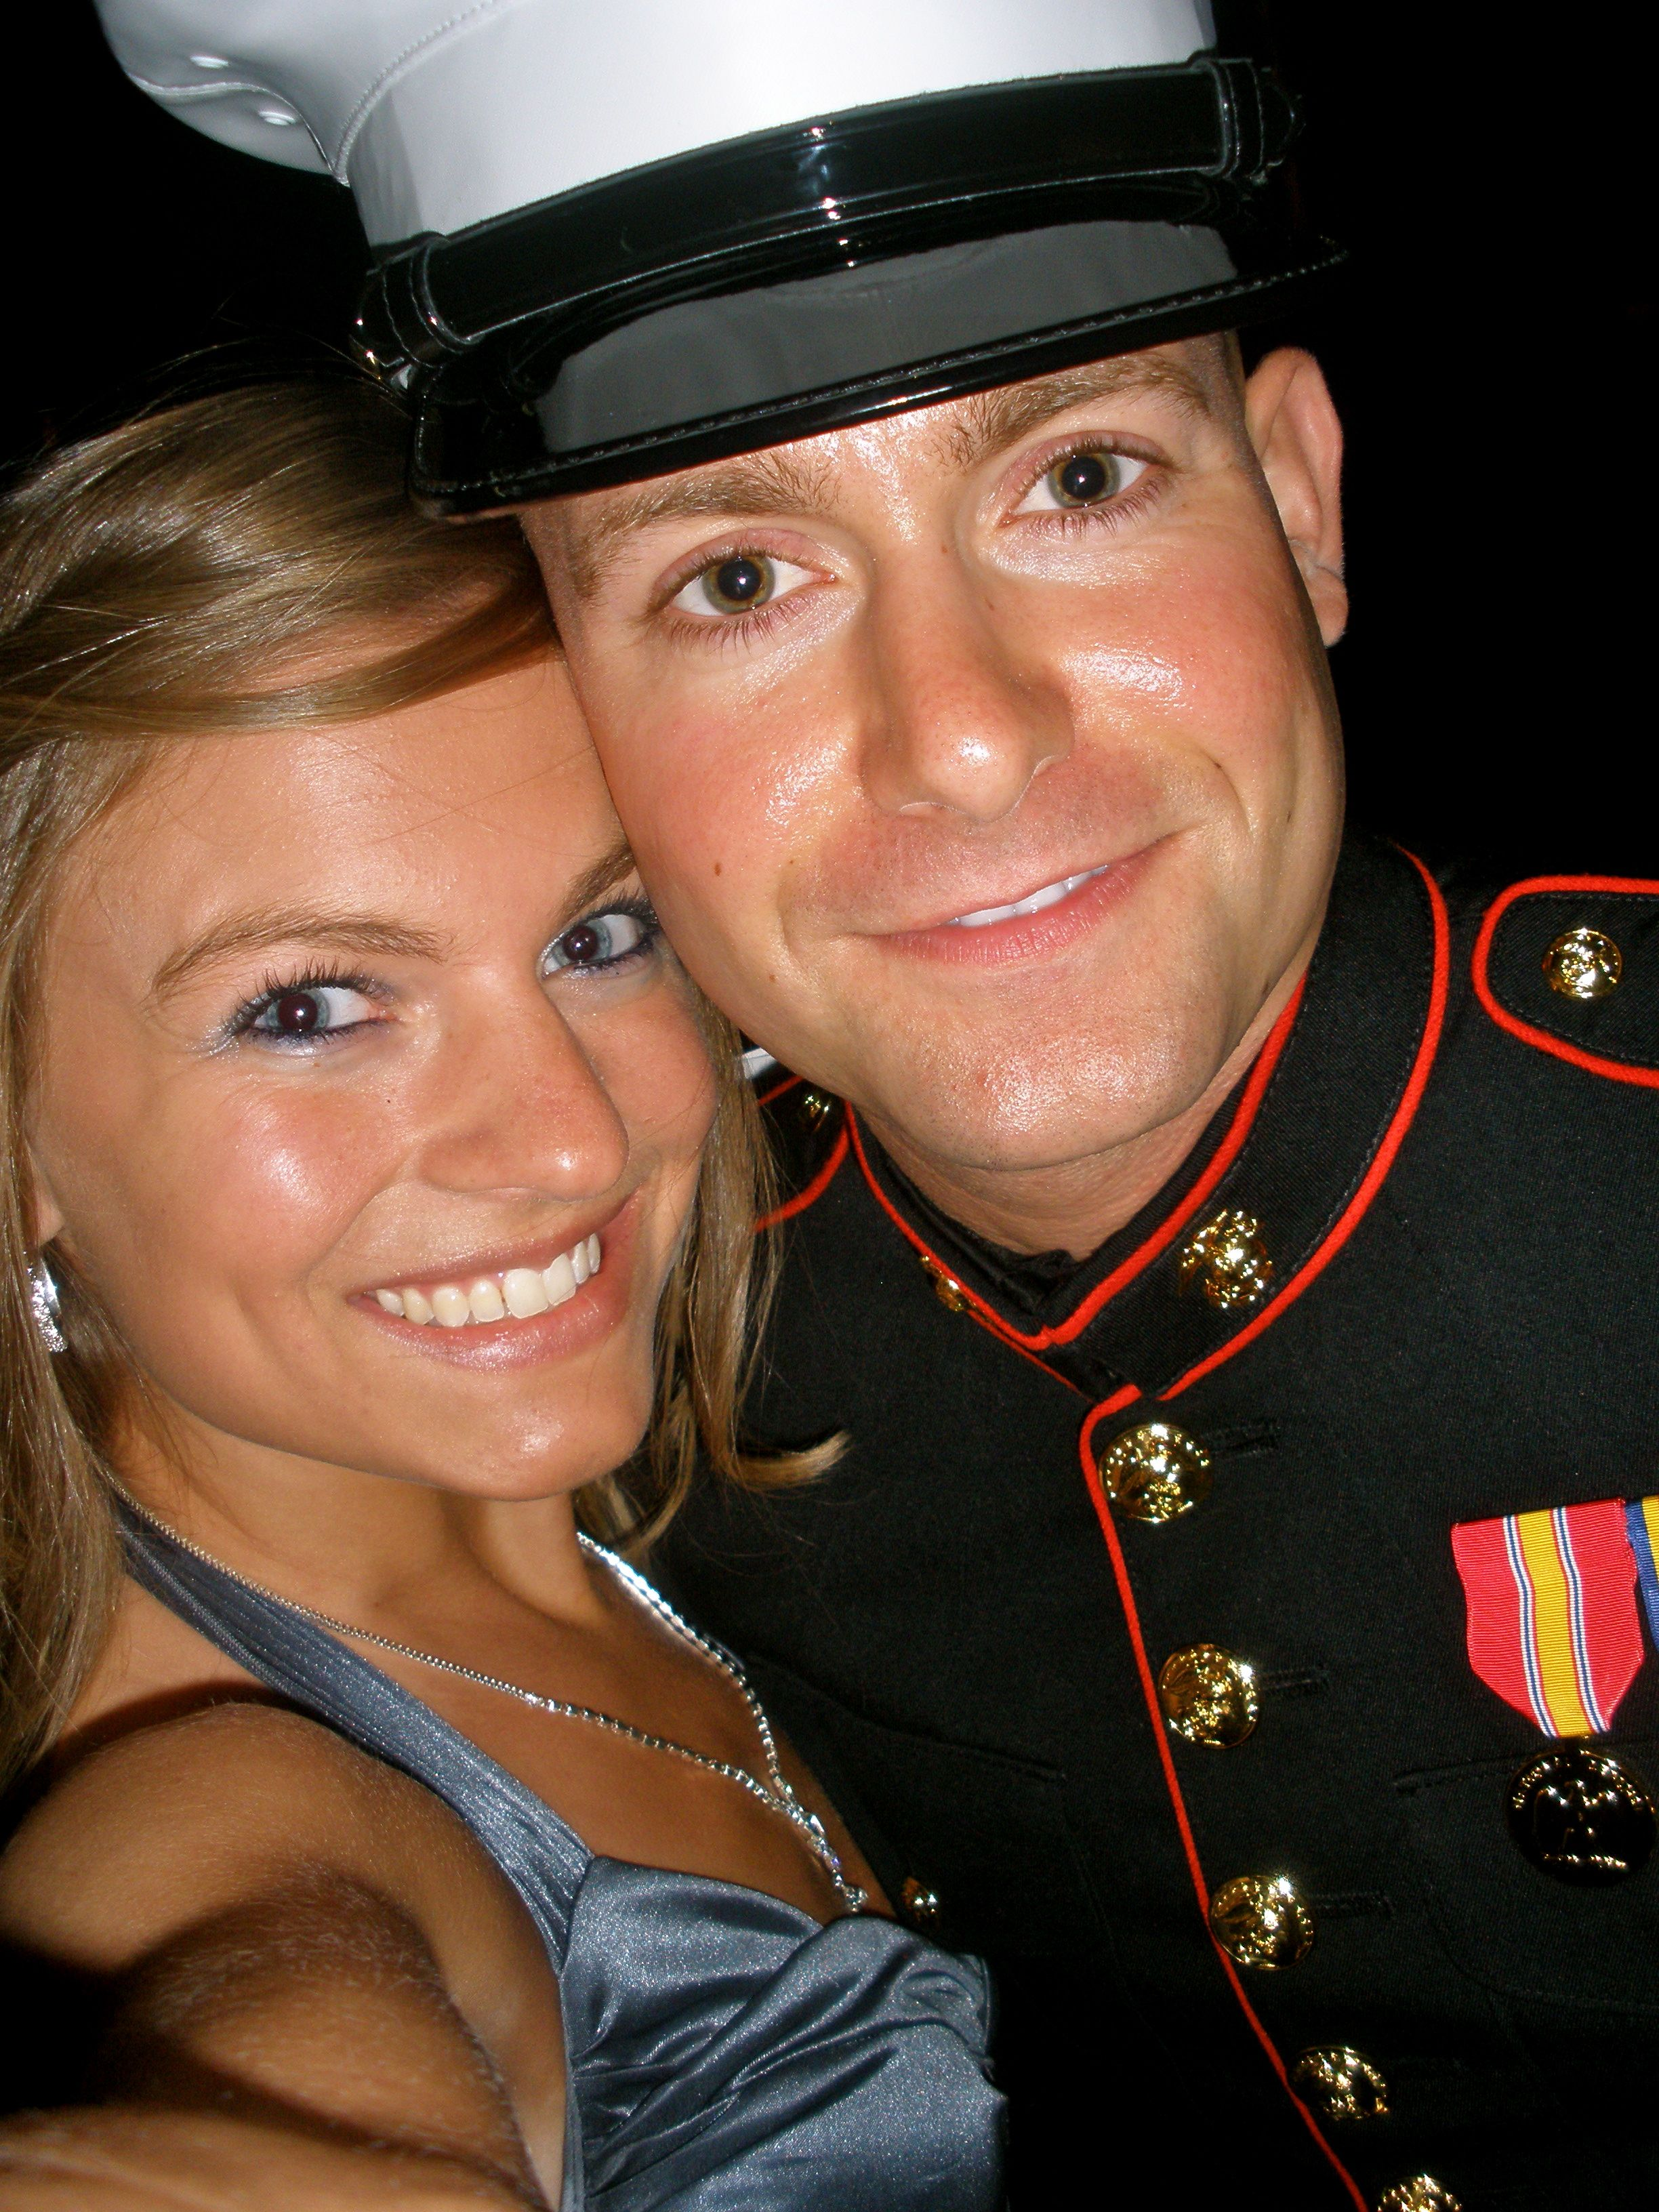 Be a Marine's date to the Marine Corps Birthday Ball